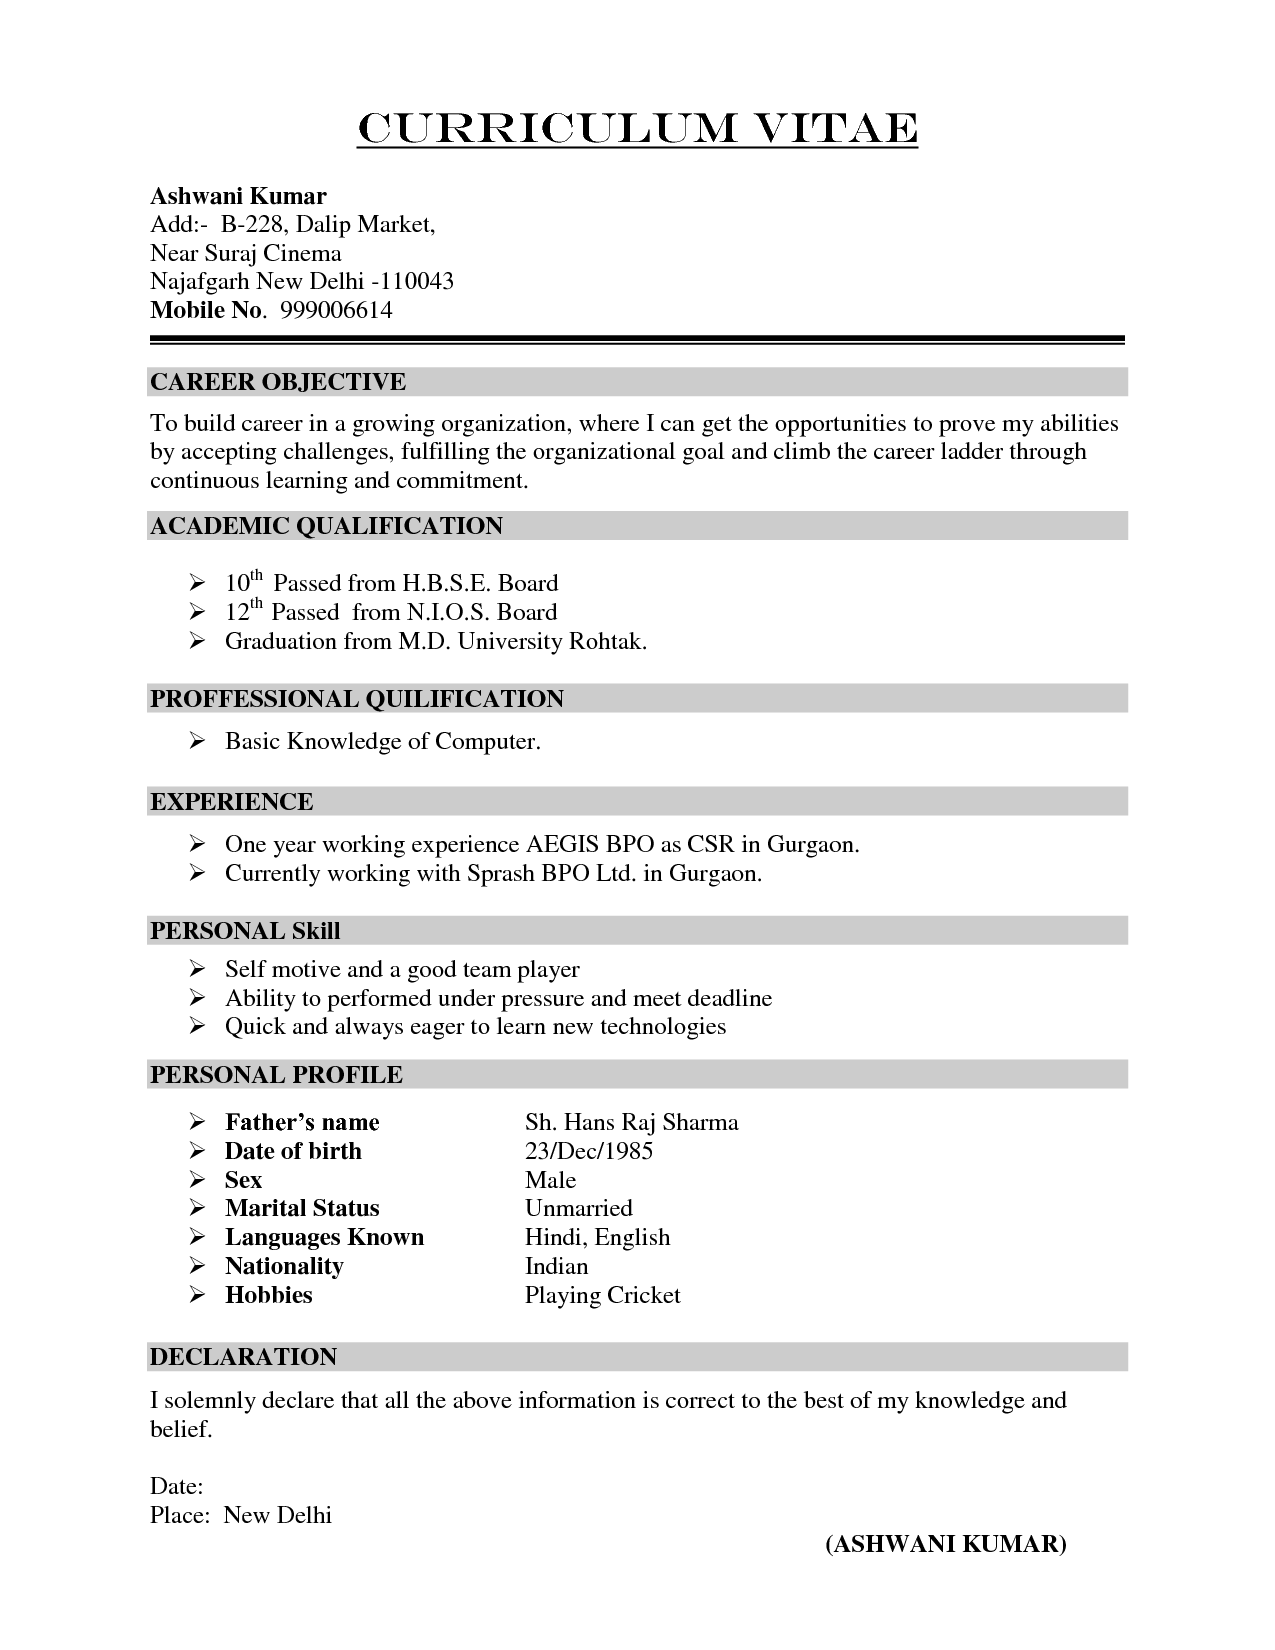 comprehensive resume format - novasatfm.tk